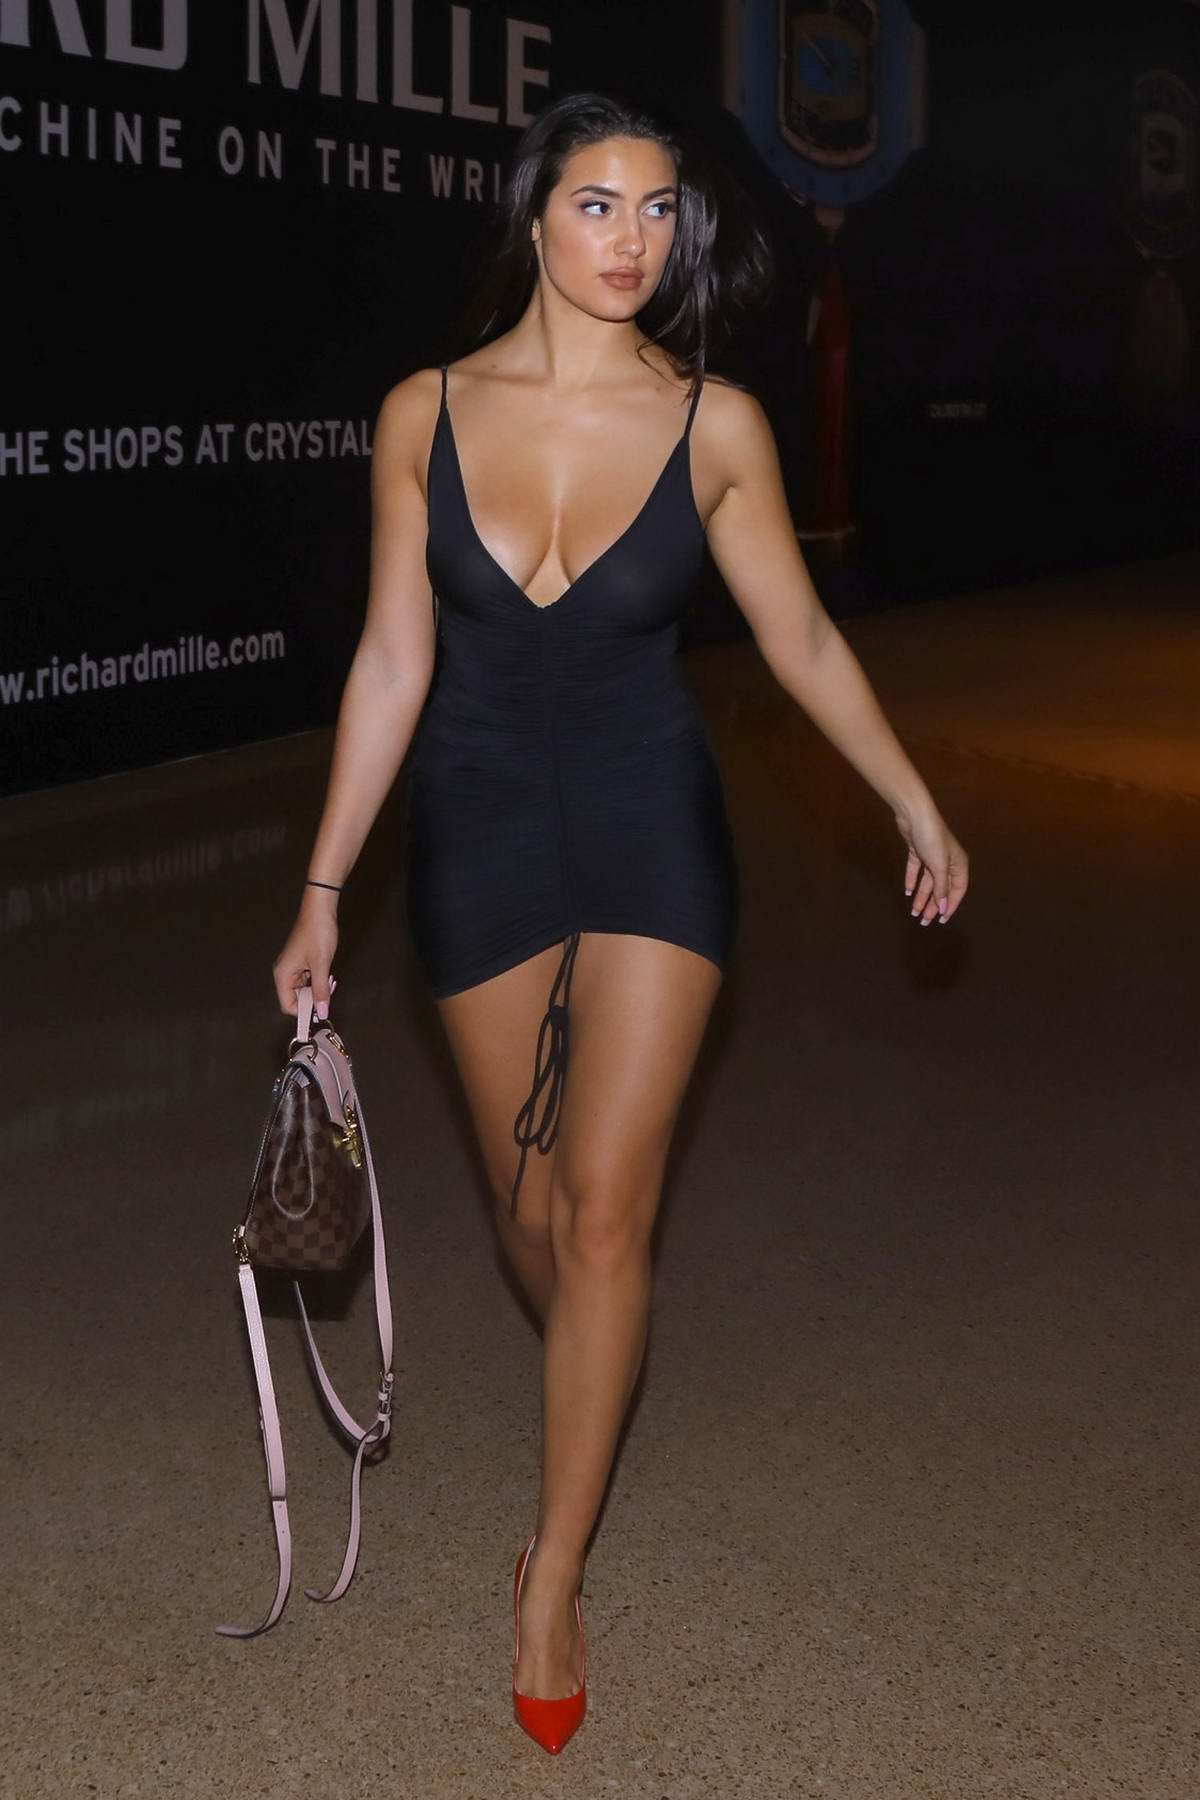 Tao Wickrath sizzles in a plunging black mini dress while out shopping at a luxury mall in Las Vegas